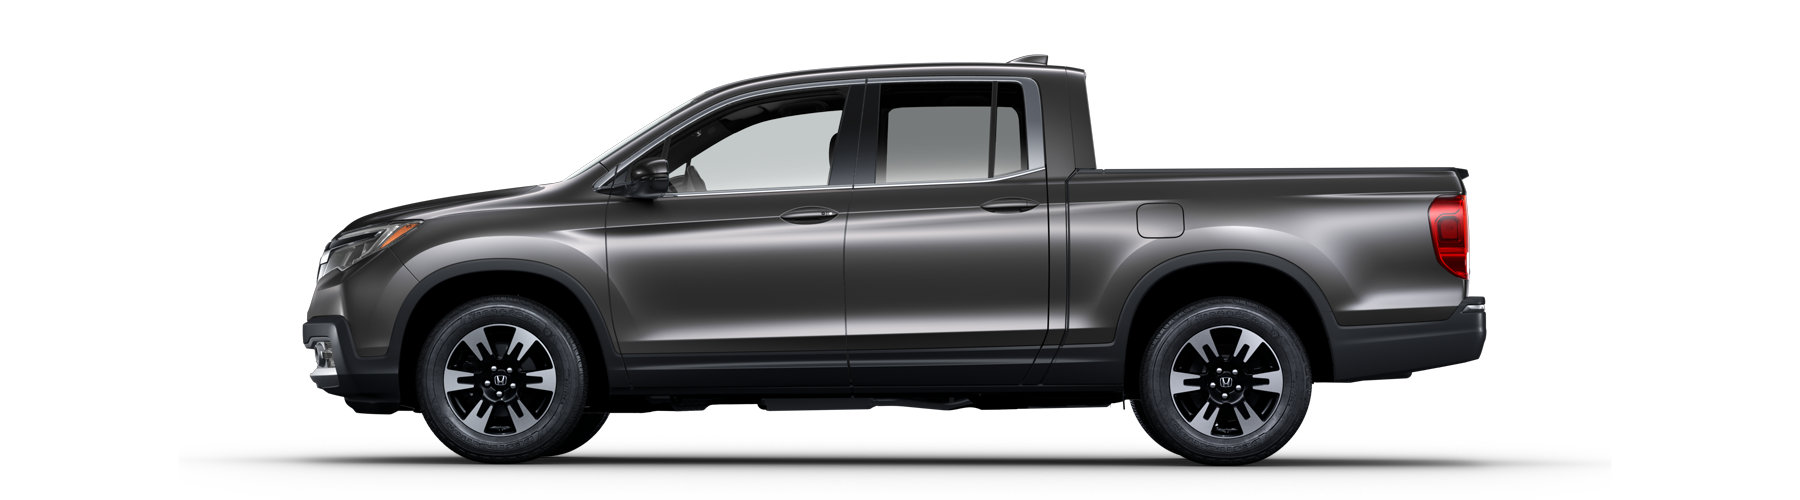 2018 Honda Ridgeline Side Profile